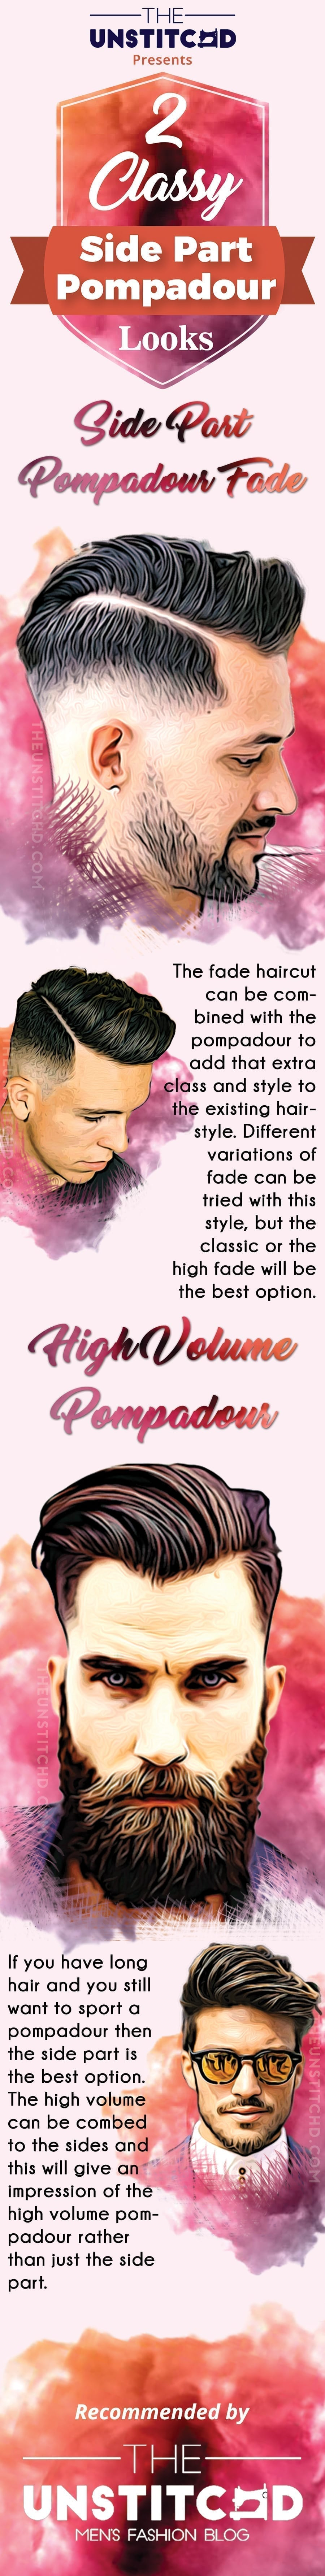 pompadour-side-part-hairstyle-info